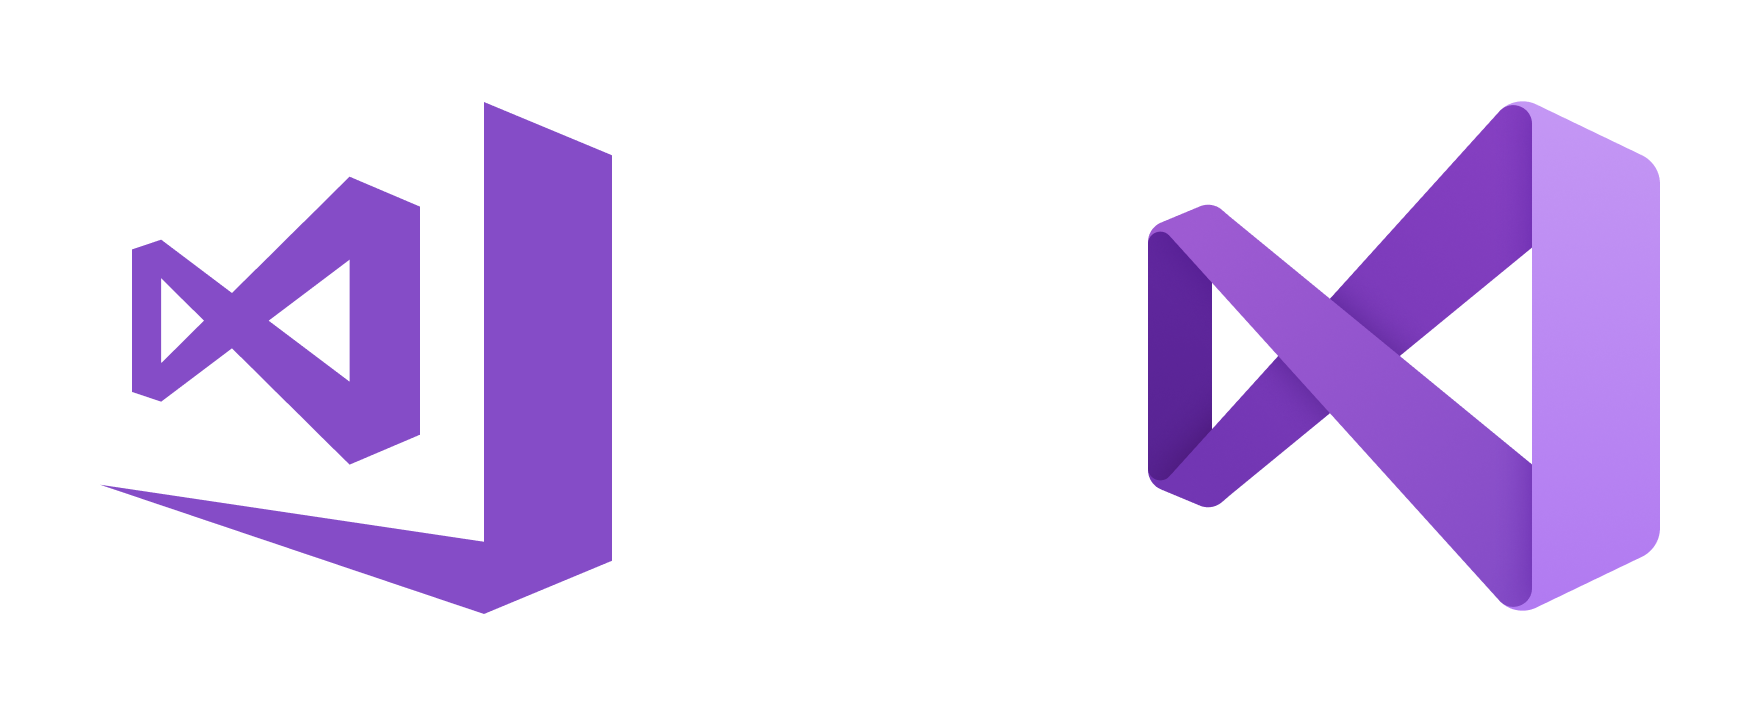 Visual Studio 2017 icon (left) and the new Visual Studio 2019 icon (right)